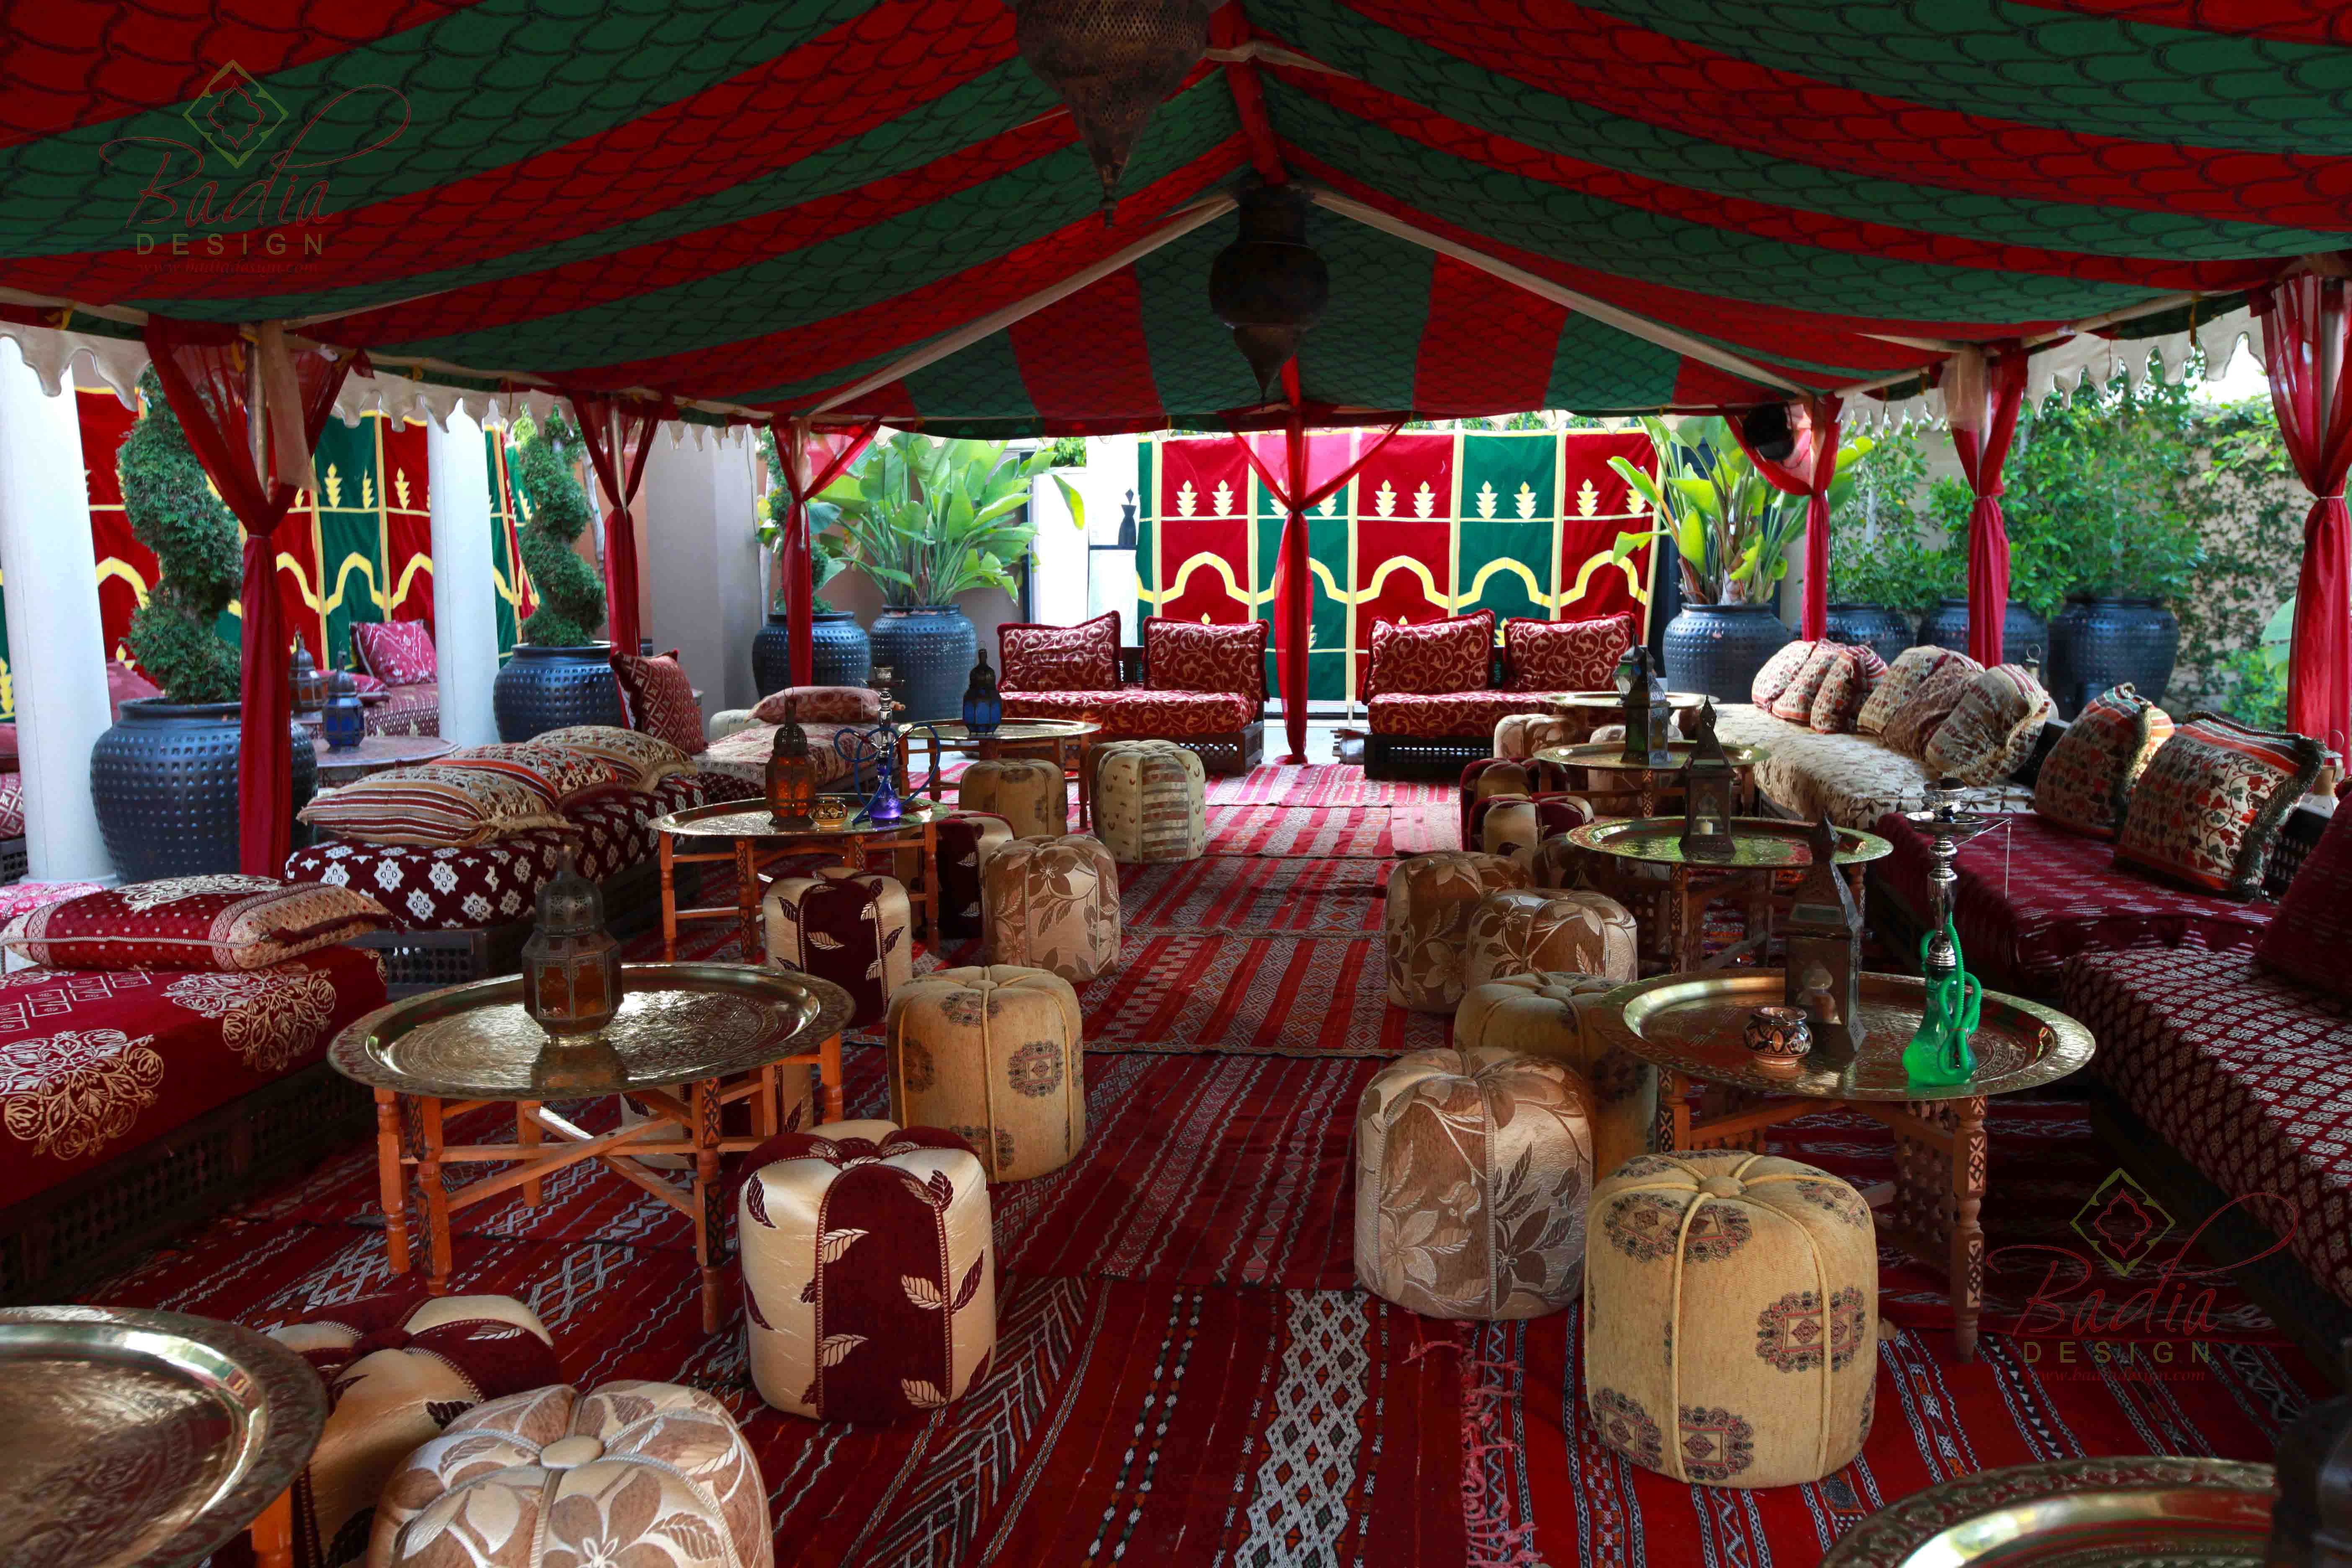 Arabian Nights Themed Party Rentals Los Angeles from Badia Design Inc.